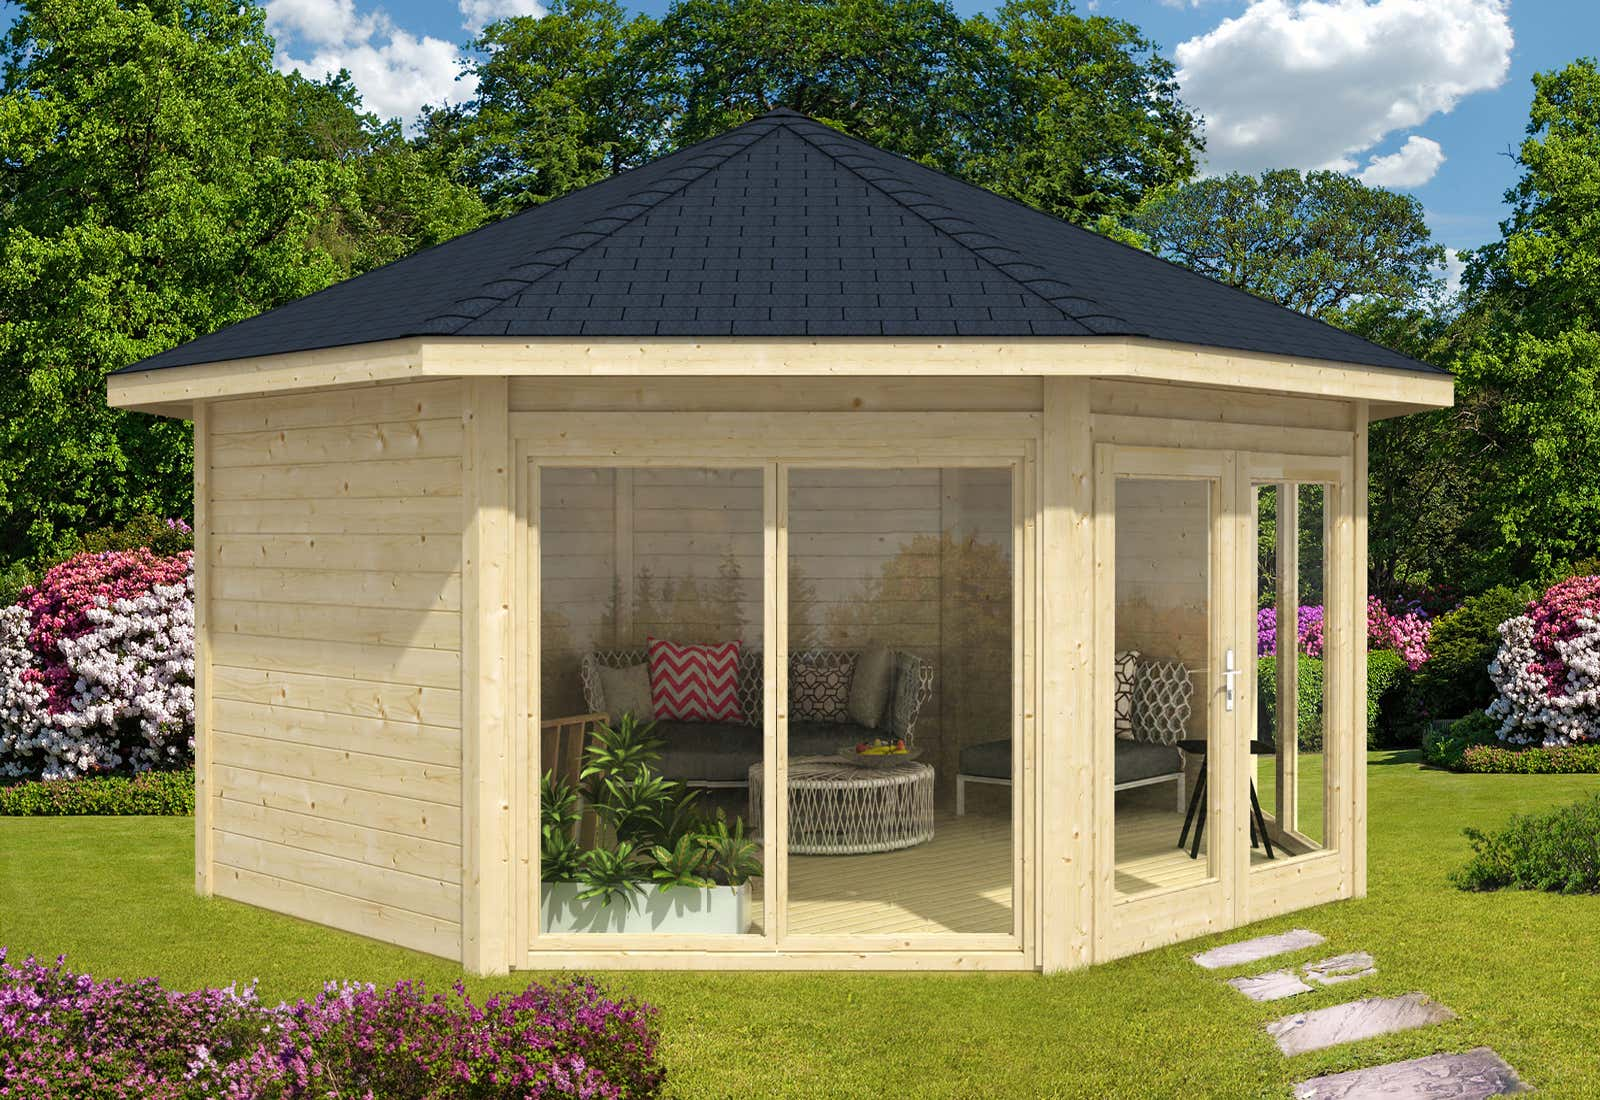 gartenpavillon modell r gen mit zwei fenstern a z gartenhaus gmbh. Black Bedroom Furniture Sets. Home Design Ideas